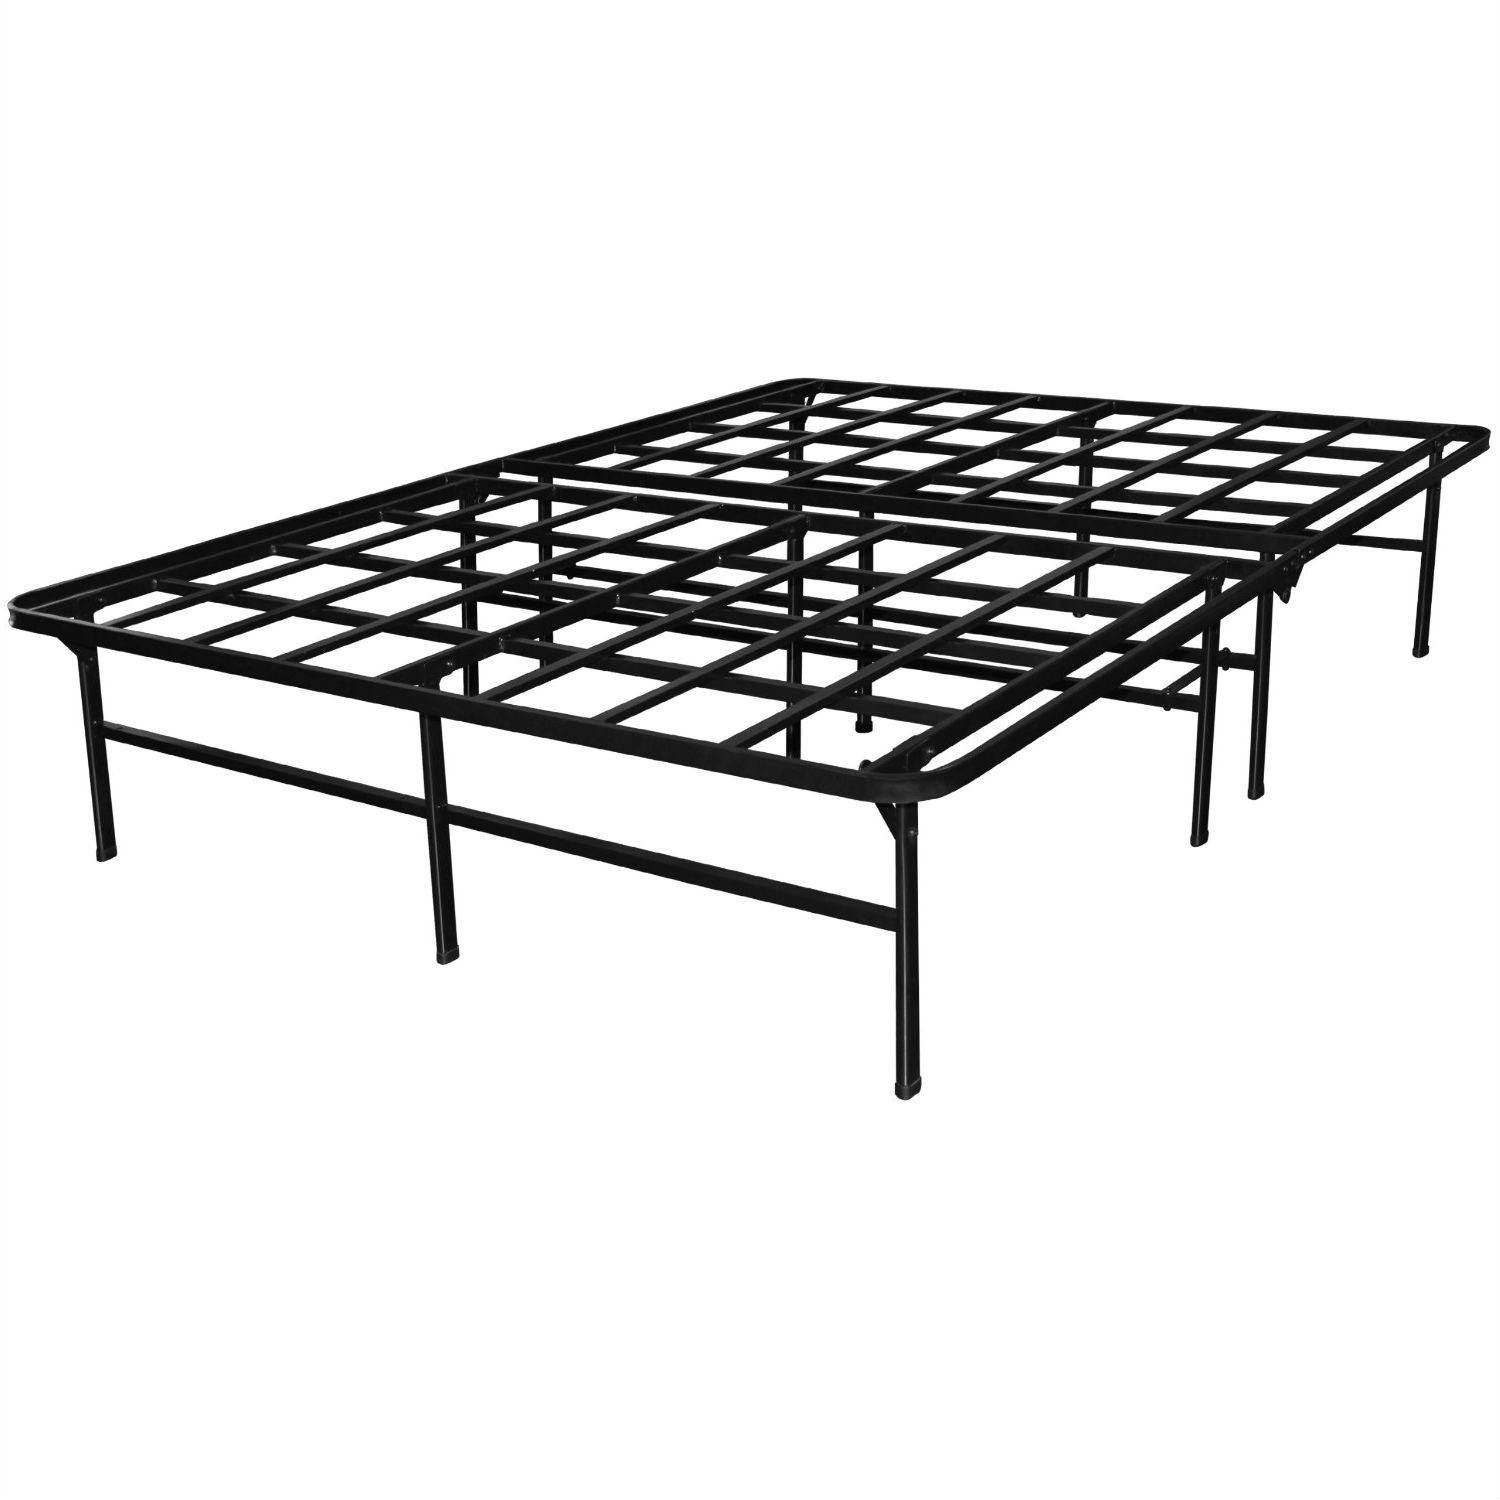 Queen size Heavy Duty Metal Platform Bed Frame Supports